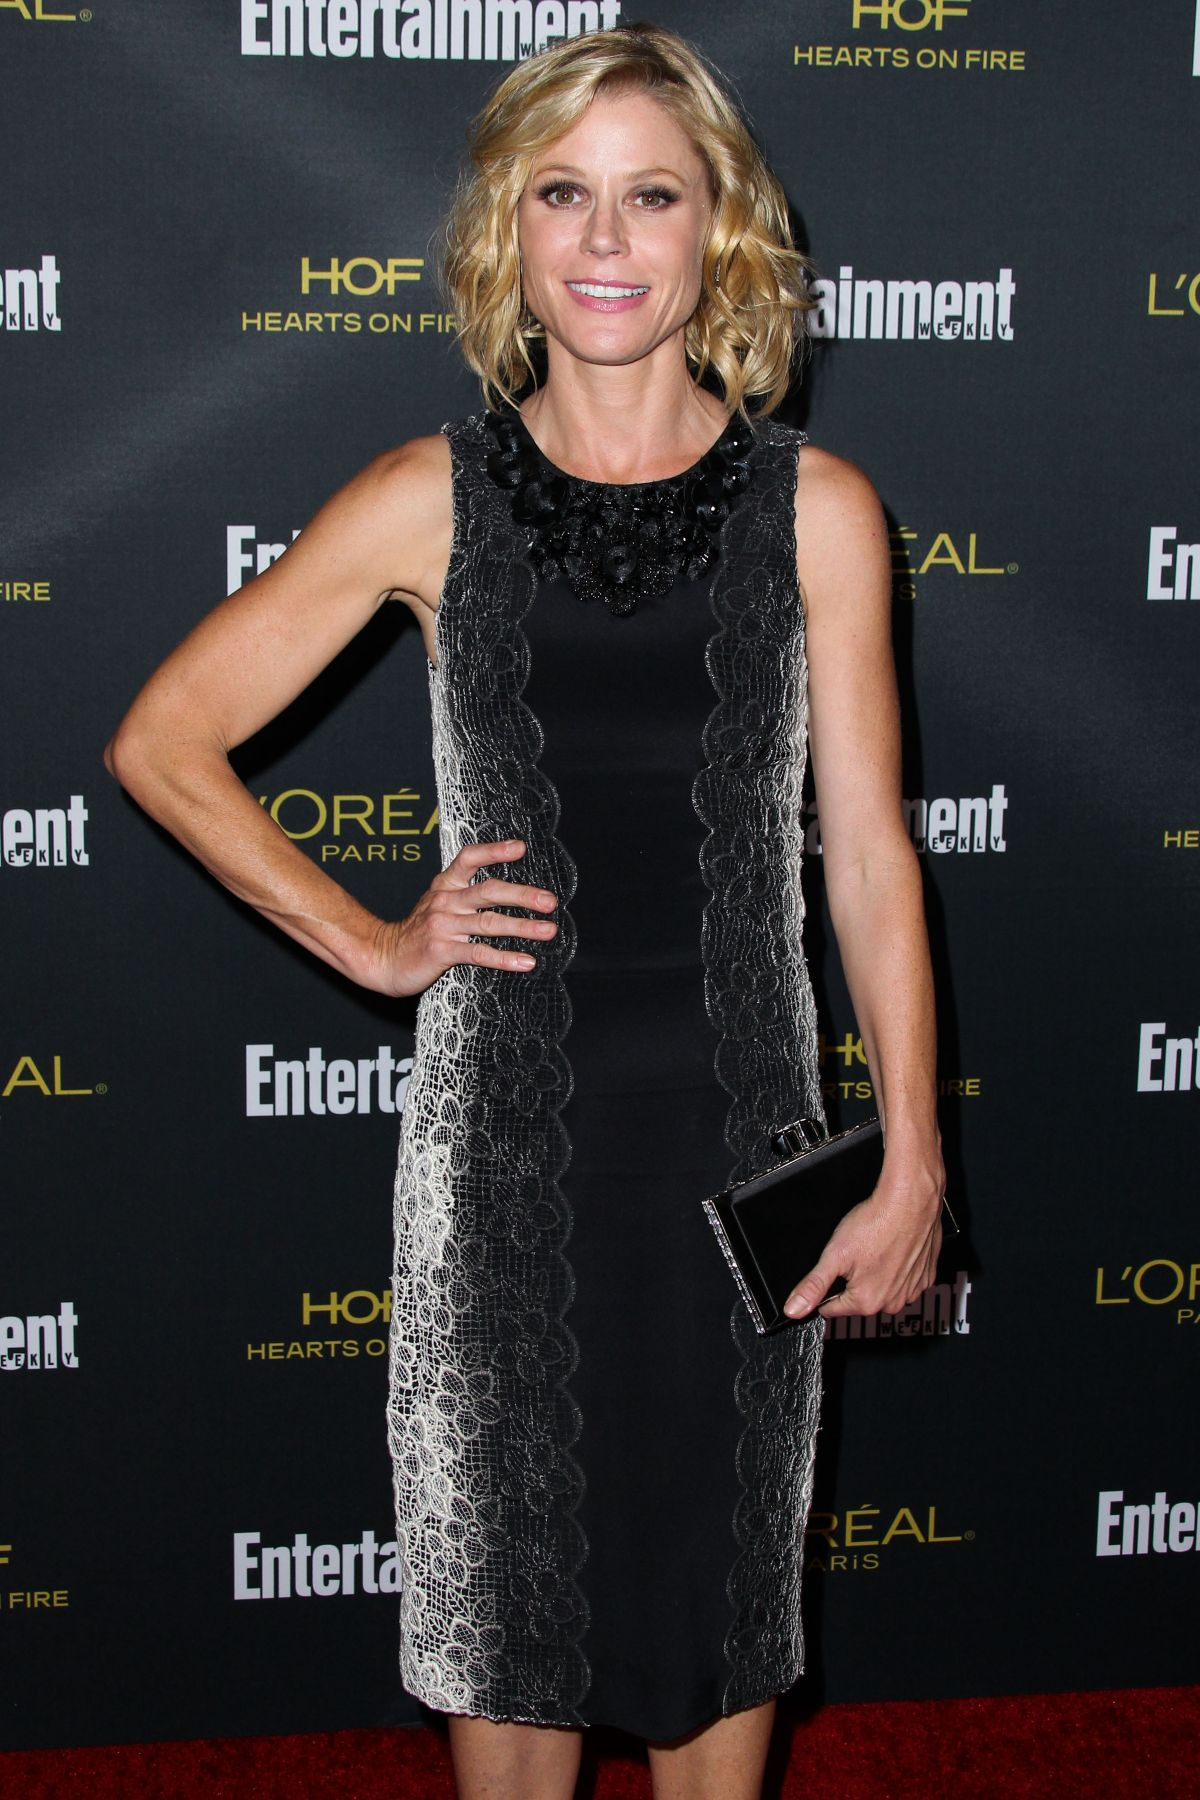 JULIE BOWEN at Entertainment Weekly's Pre-emmy Party